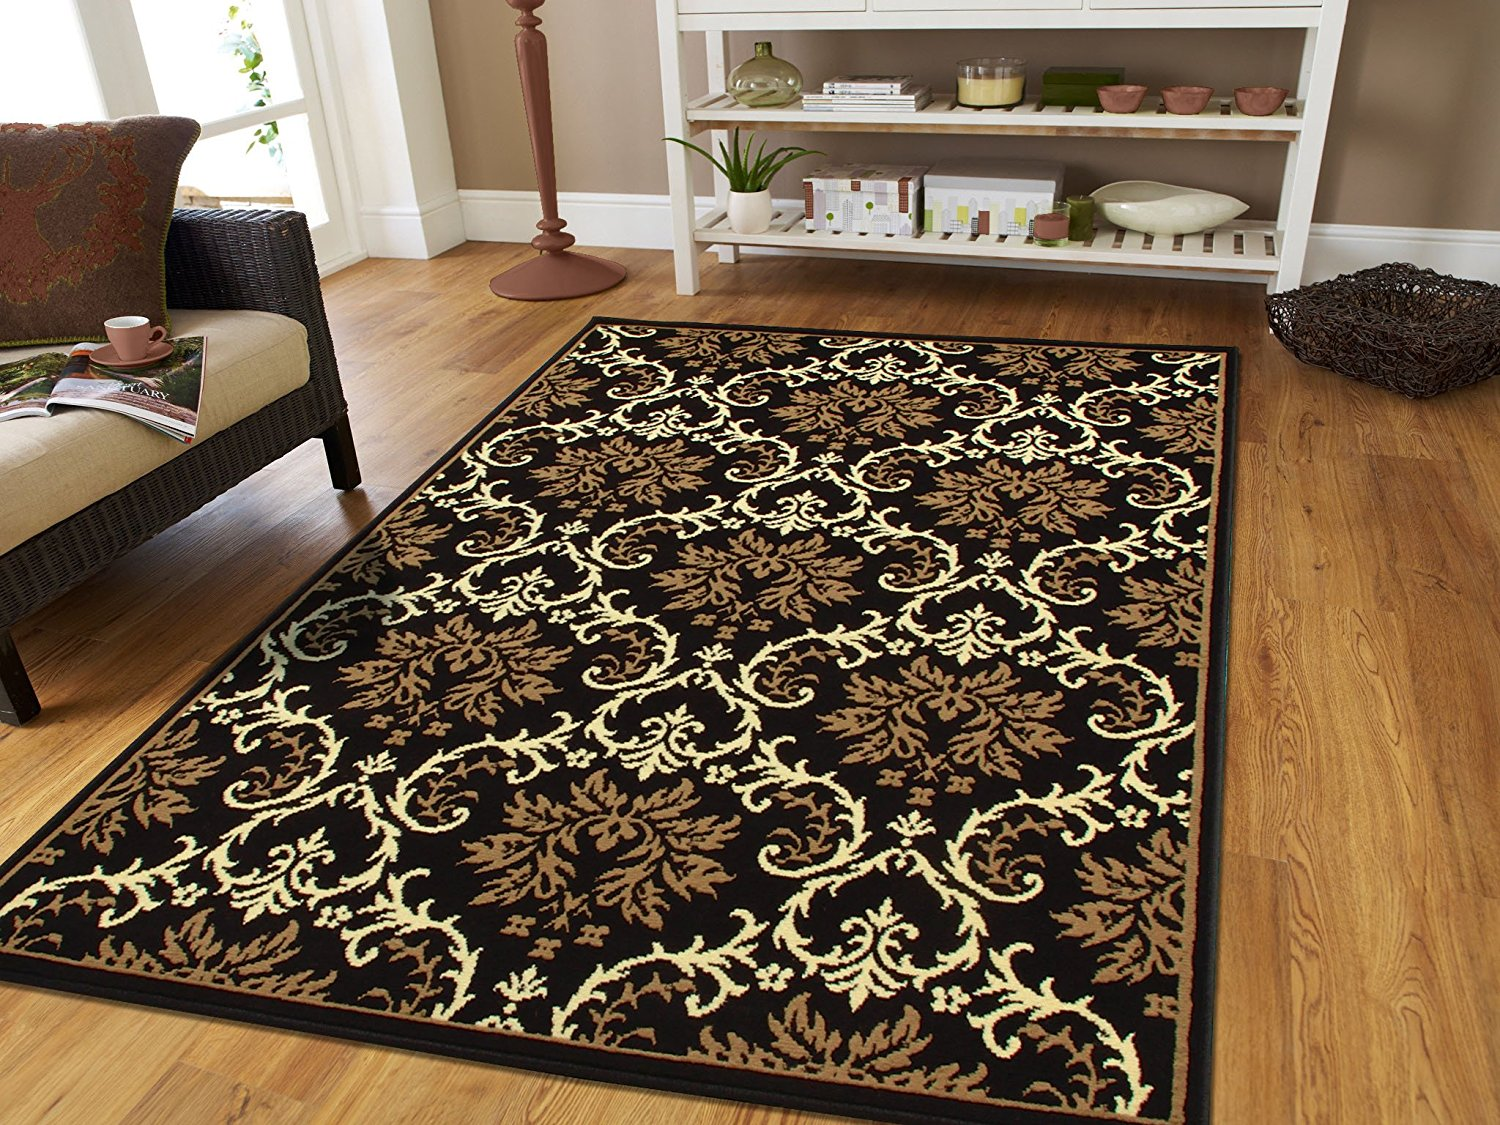 Area Rugs For Living Room Large 8x11 Modern Rug Black Beige Walmart Com